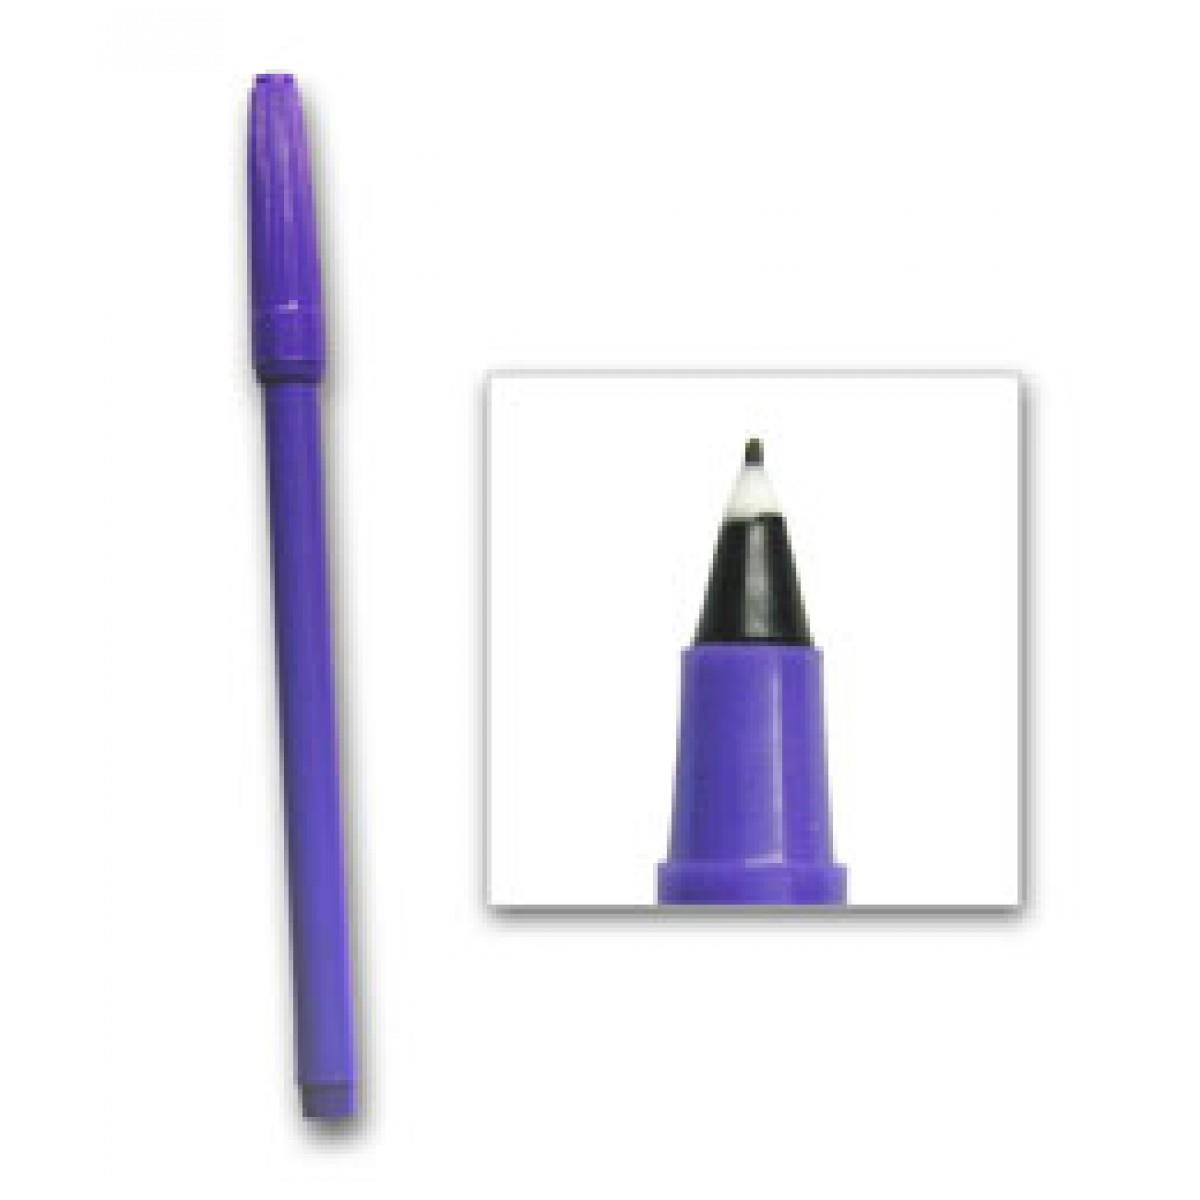 Devon™ Surgical Skin Markers - Fine Tip - Lexicon Medical Supply